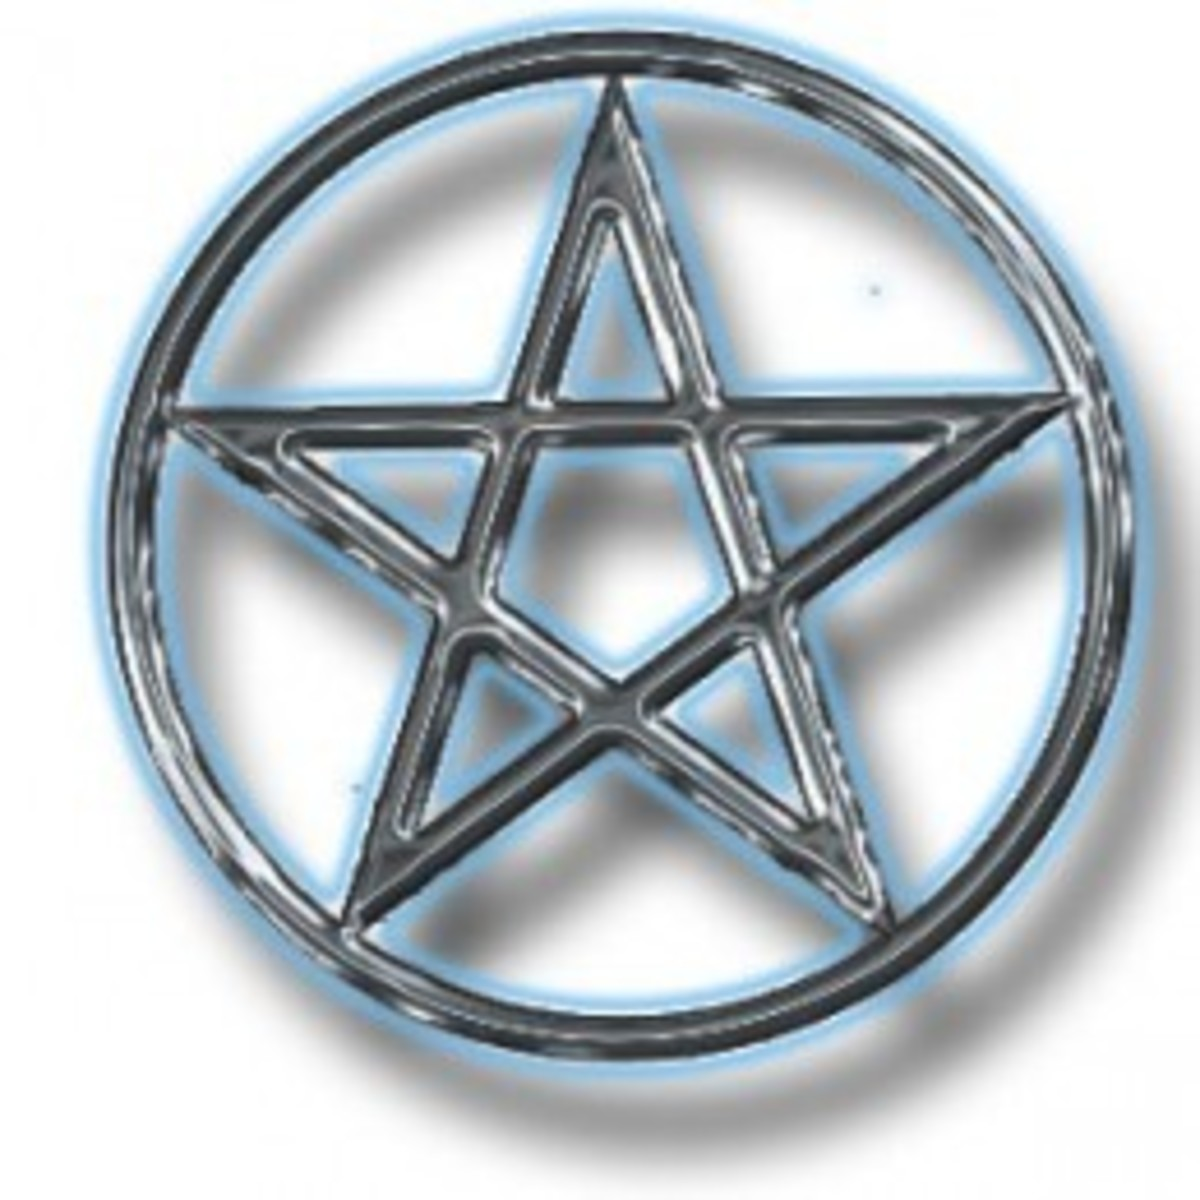 ethics-in-wicca-part-2-the-threefold-law